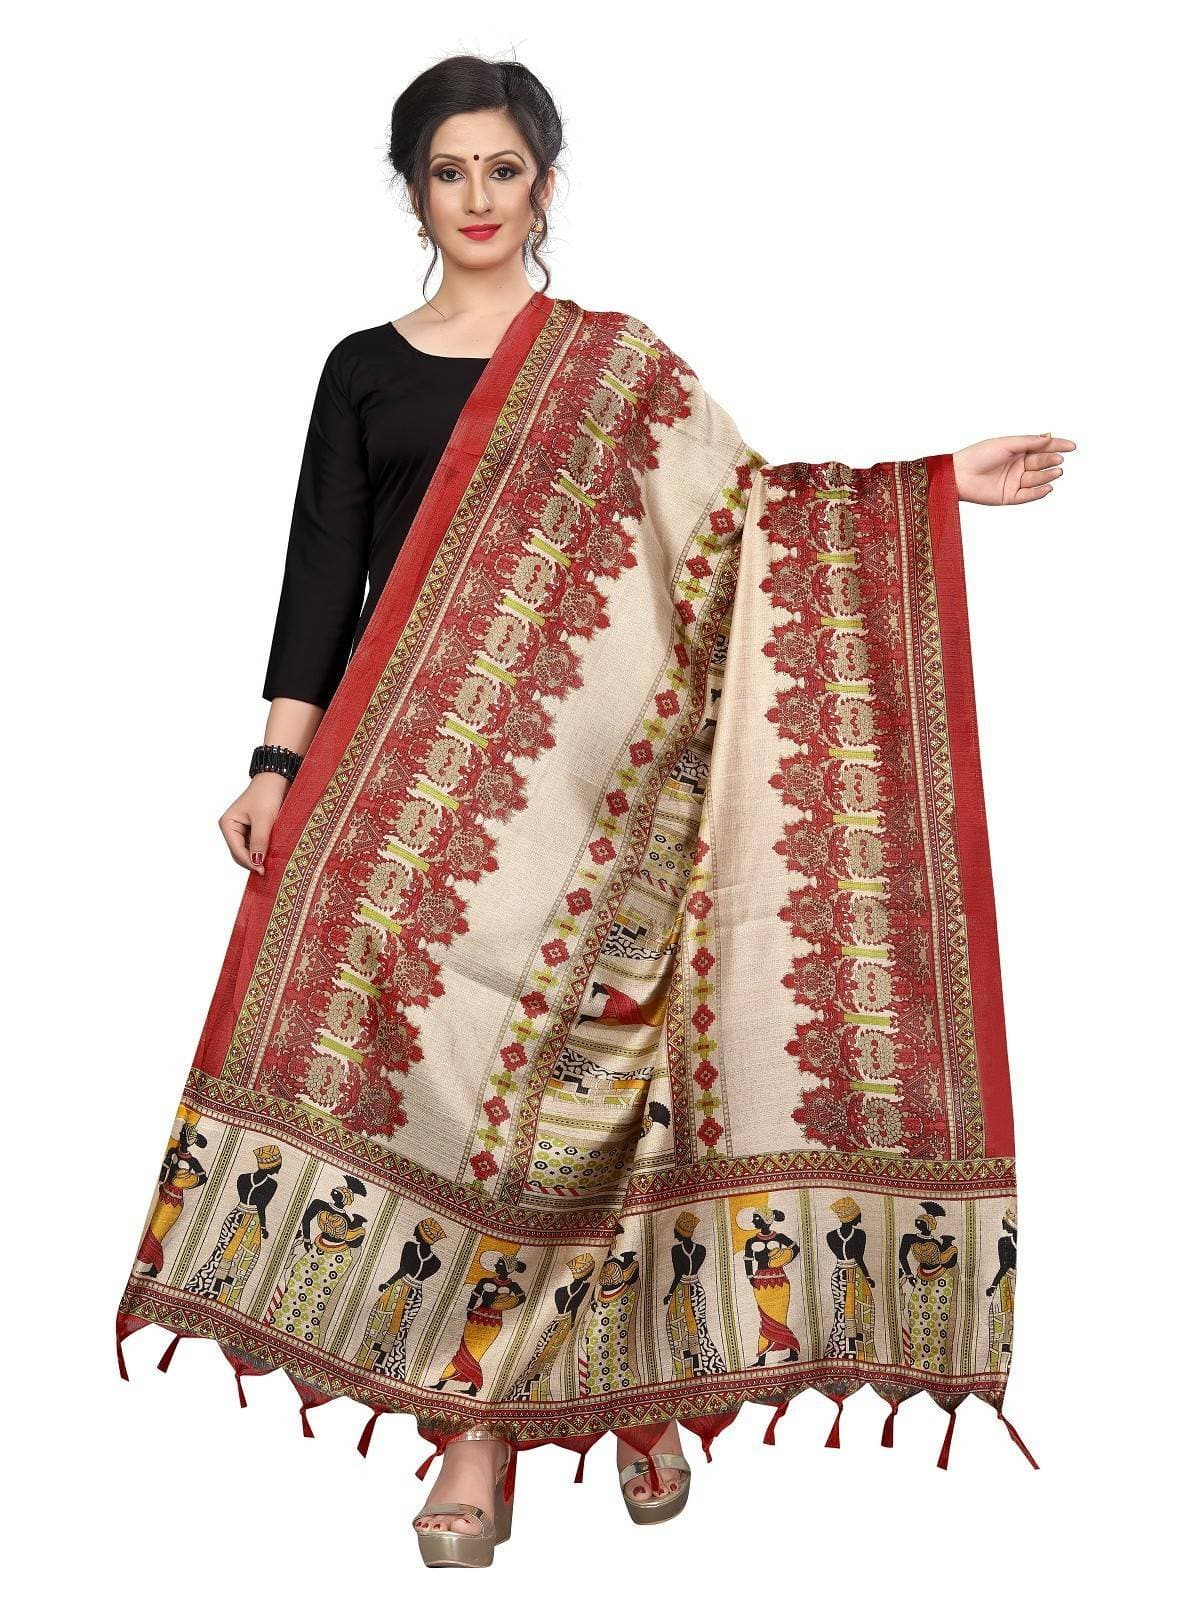 Vamika Red Latest Printed Khadi Bhagalpuri Dupatta